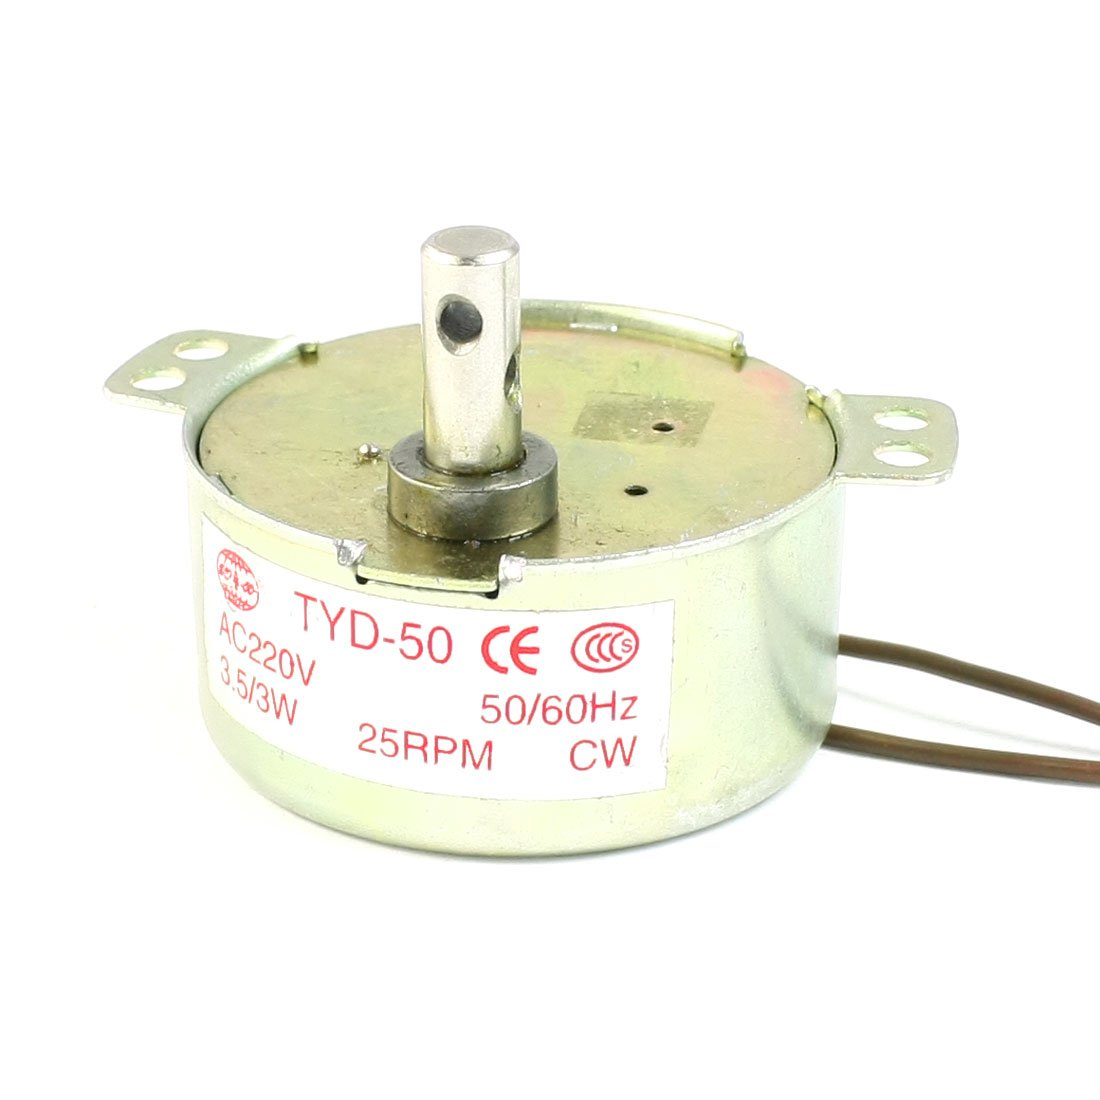 25rpm 220 V AC 3, 5/3 W 2 Draht Terminals Zylindrische Micro Motor Sourcingmap a13062100ux0156